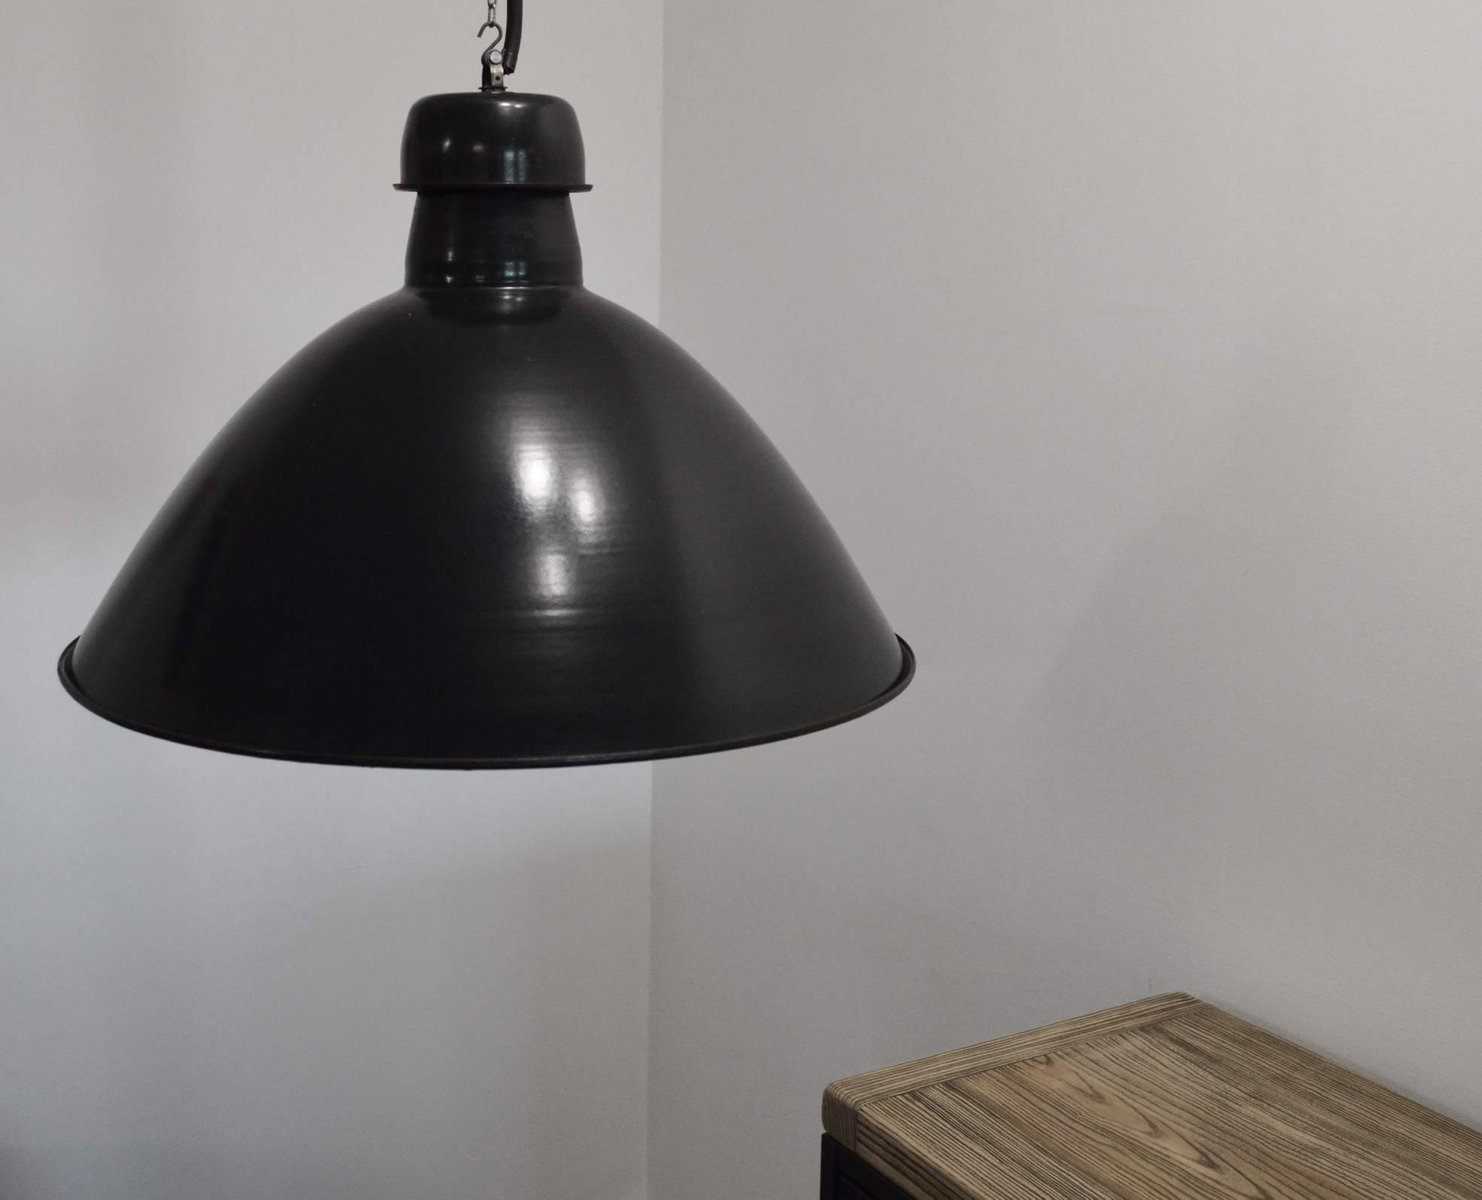 lampe suspension vintage industrielle en vente sur pamono. Black Bedroom Furniture Sets. Home Design Ideas